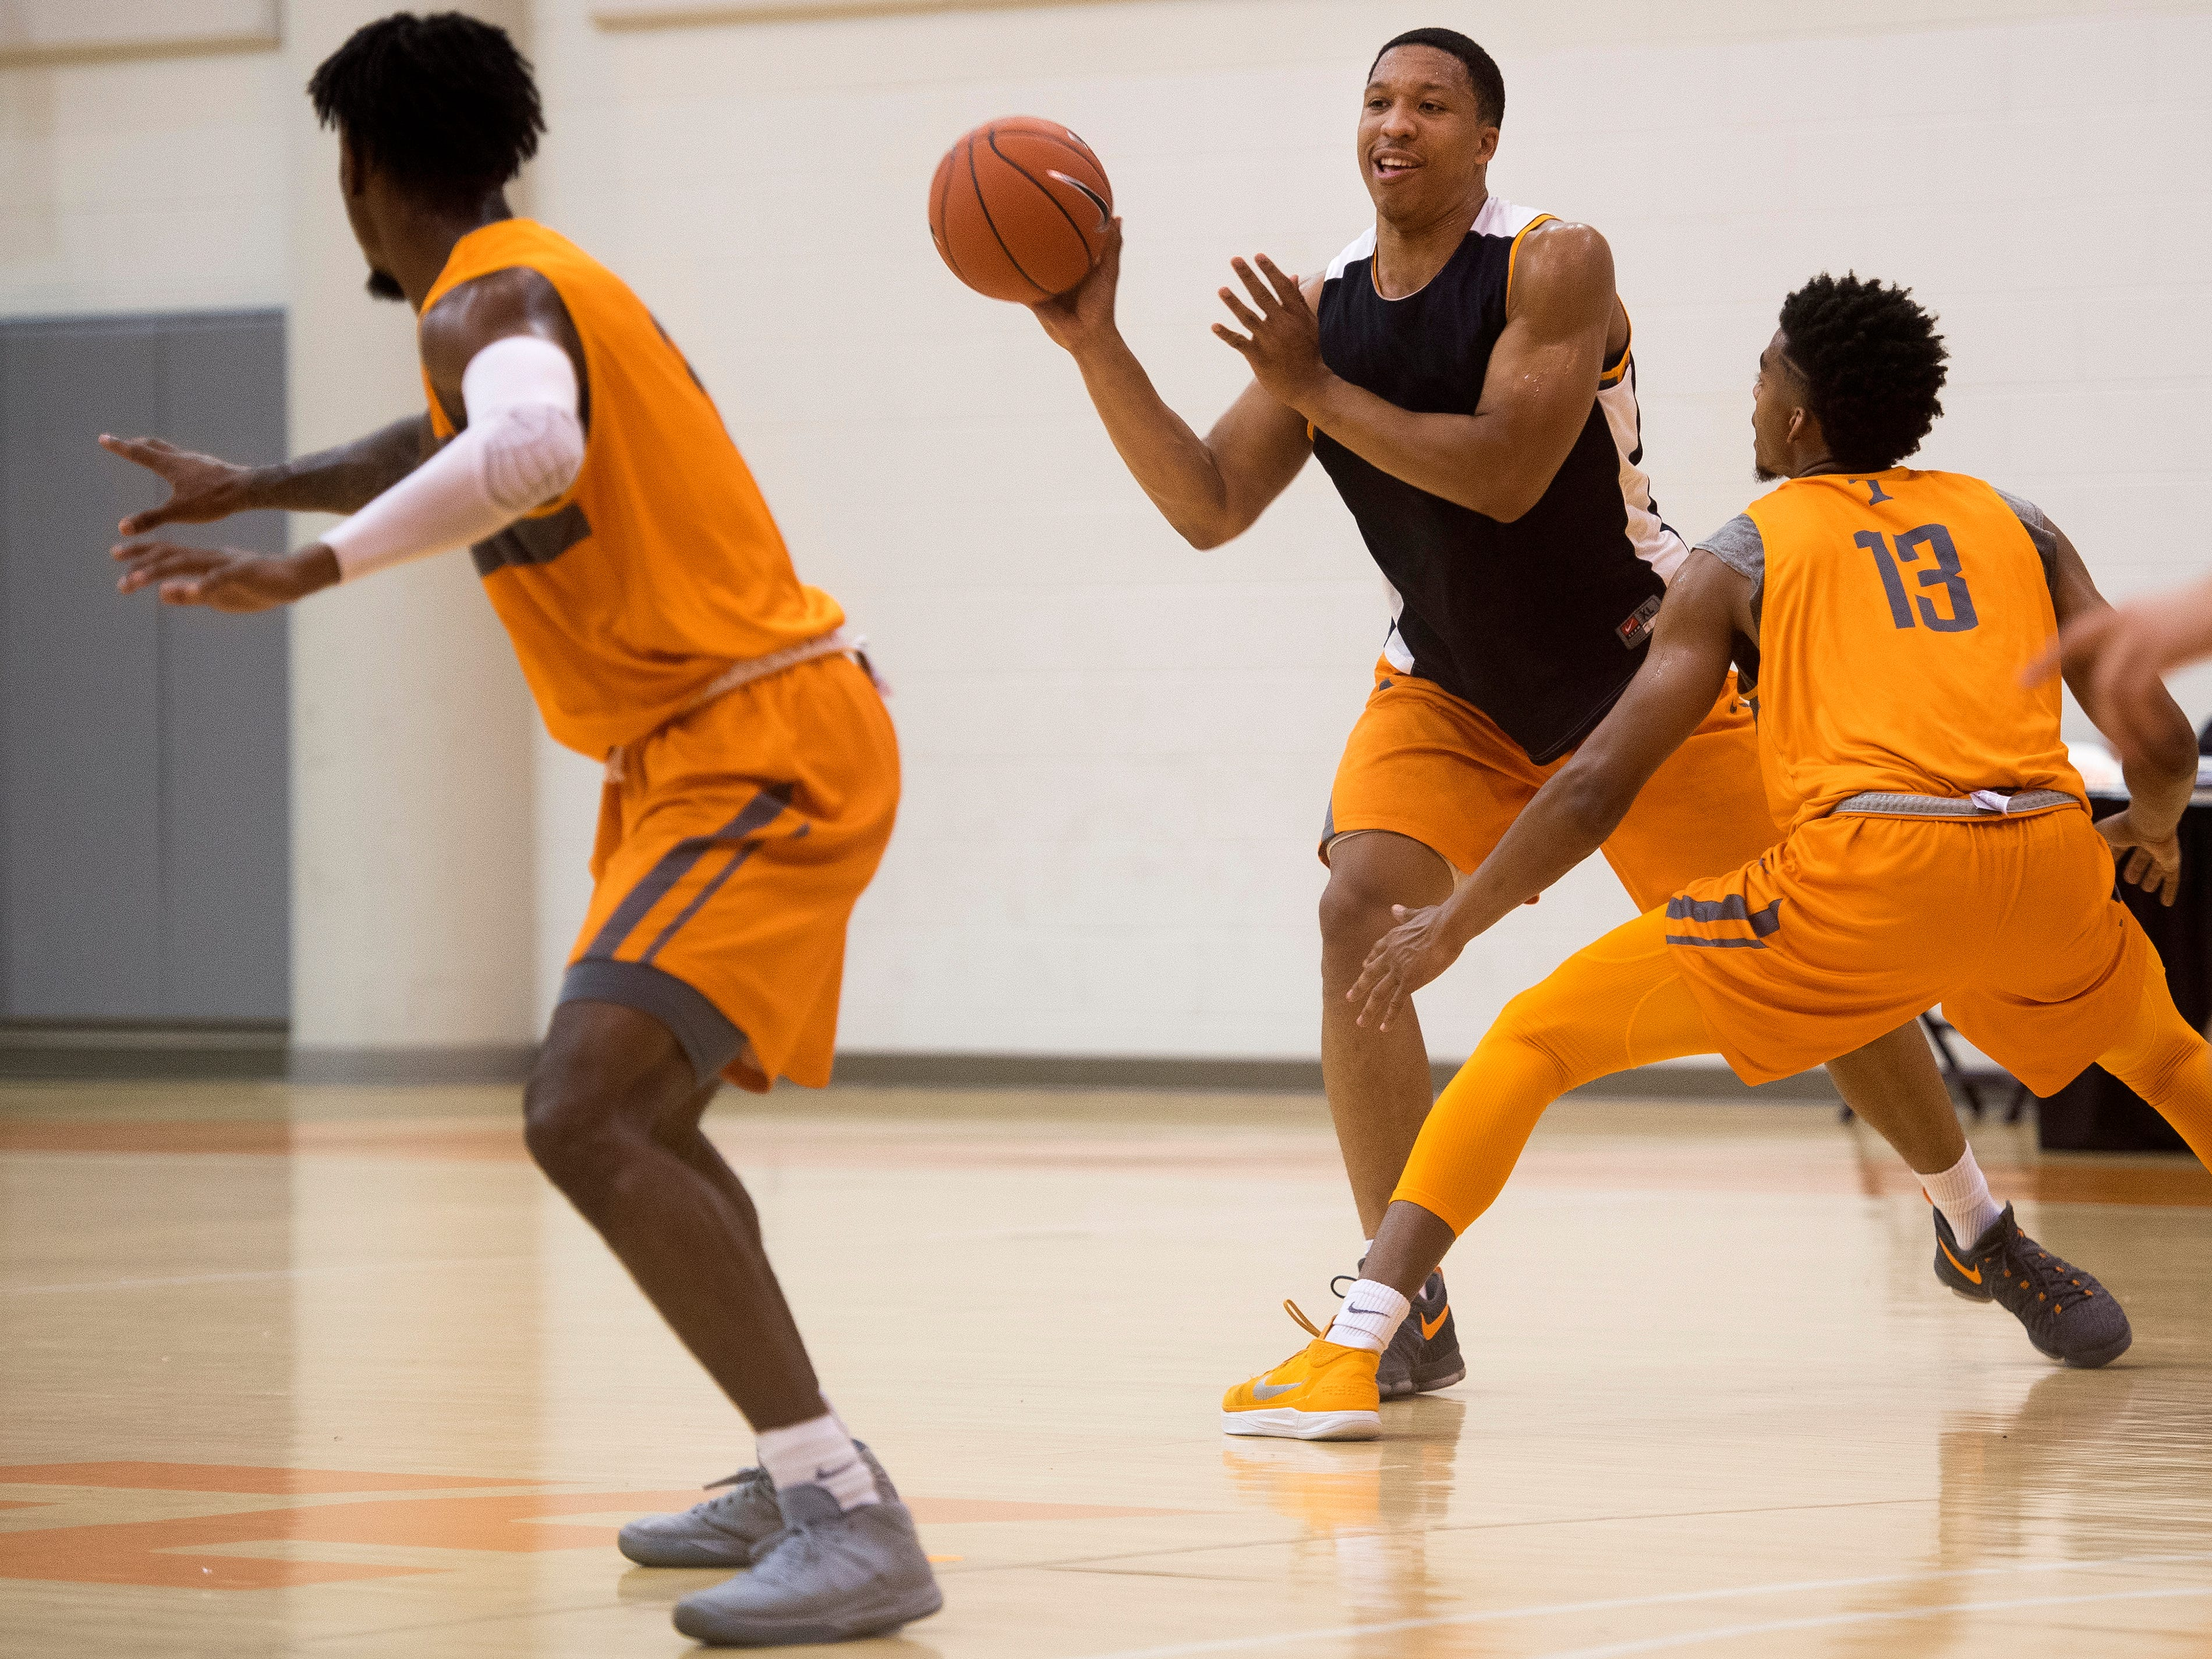 Tennessee forward Grant Williams (2) during basketball practice at Pratt Pavilion on the University of Tennessee's campus on Thursday, October 4, 2018.